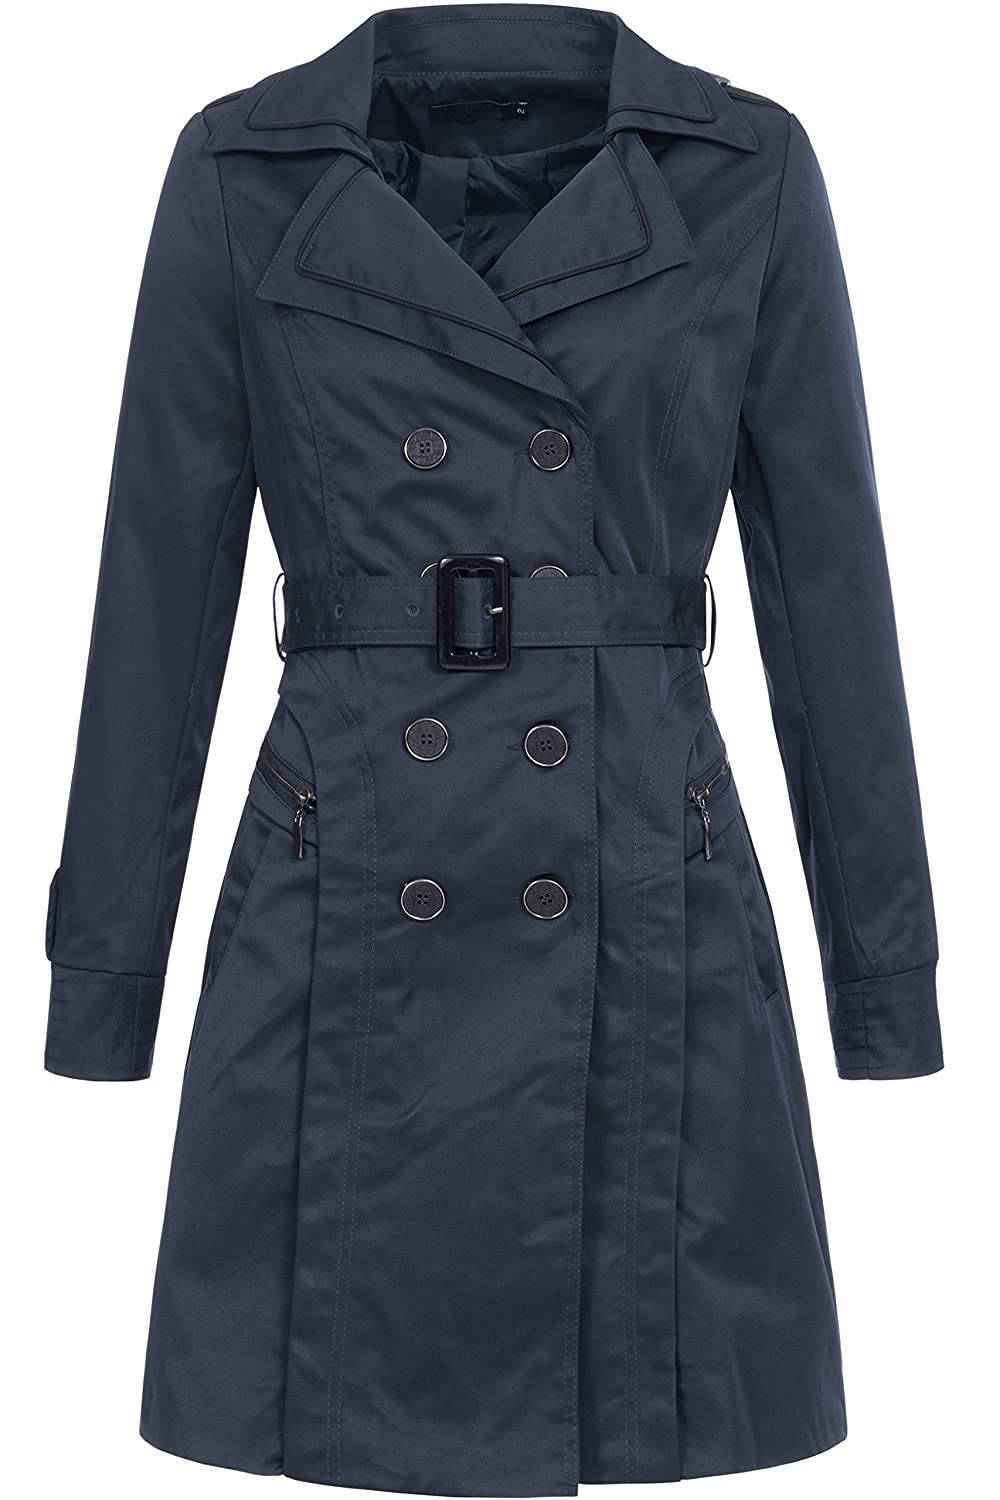 Peak Time Damen Übergangs-Jacke Mantel Trenchcoat F327TR